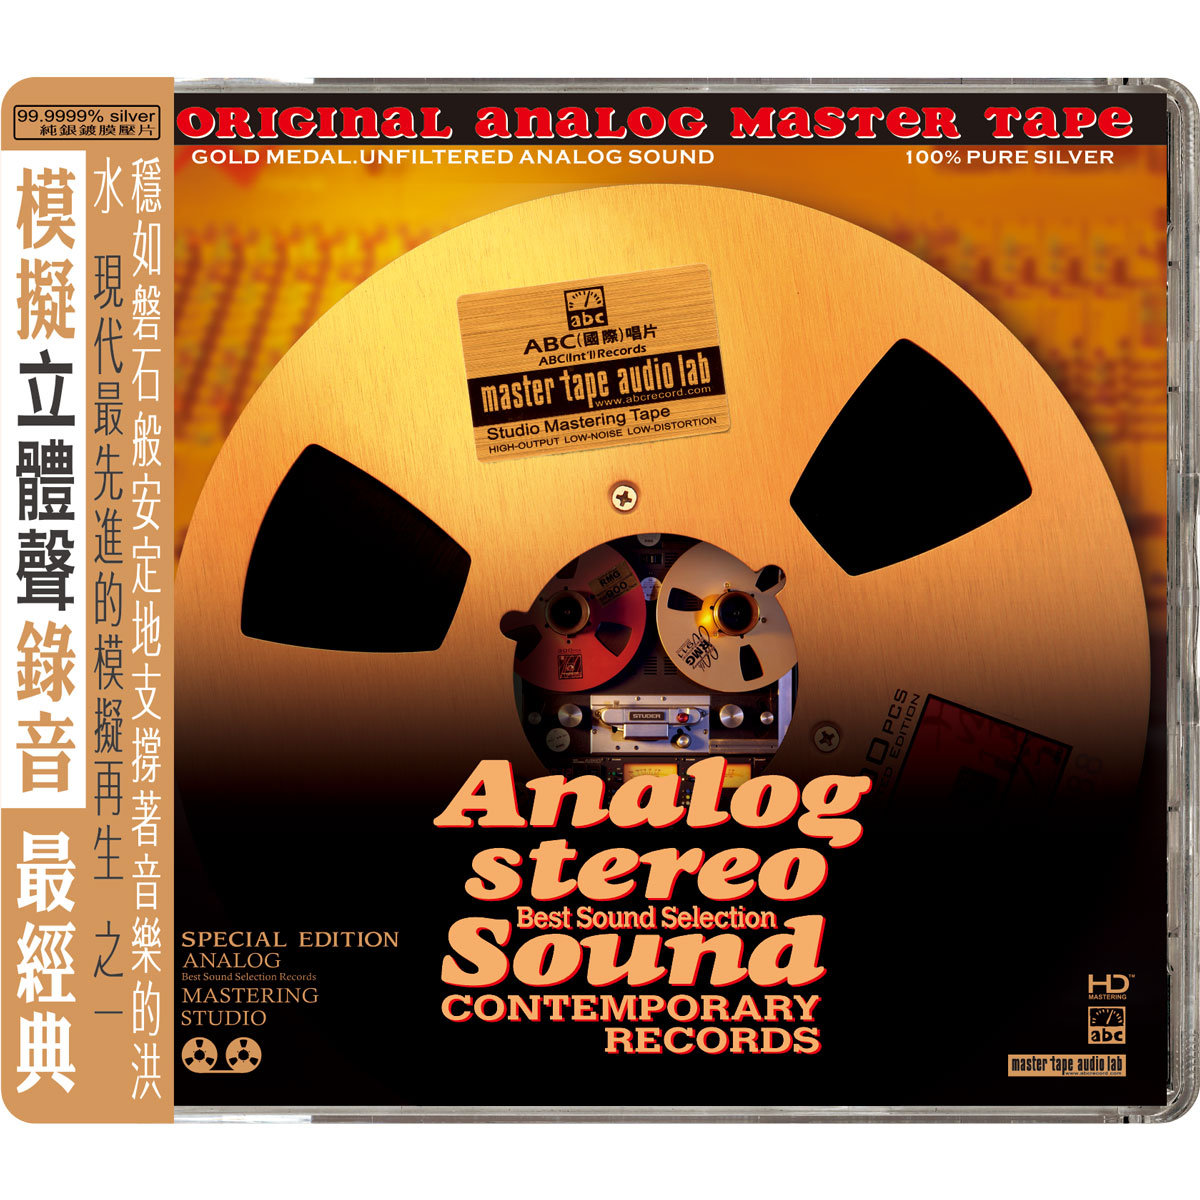 Analog Stereo Sound - Best Sound Selection